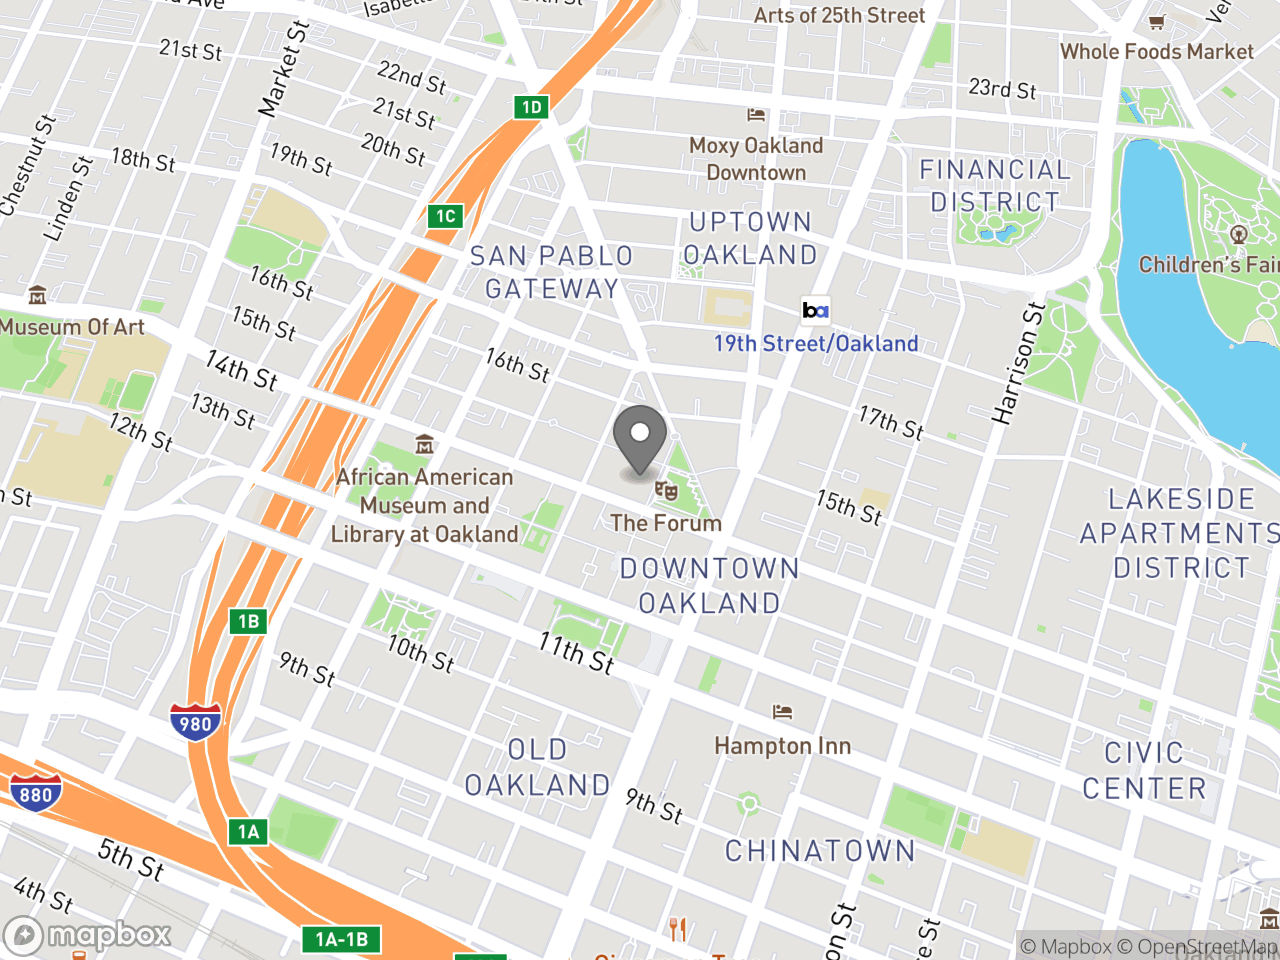 Map image for Bicyclist and Pedestrian Advisory Commission (BPAC) Meeting, February 19, 2015, located at 1 Frank H Ogawa Plaza in Oakland, CA 94612